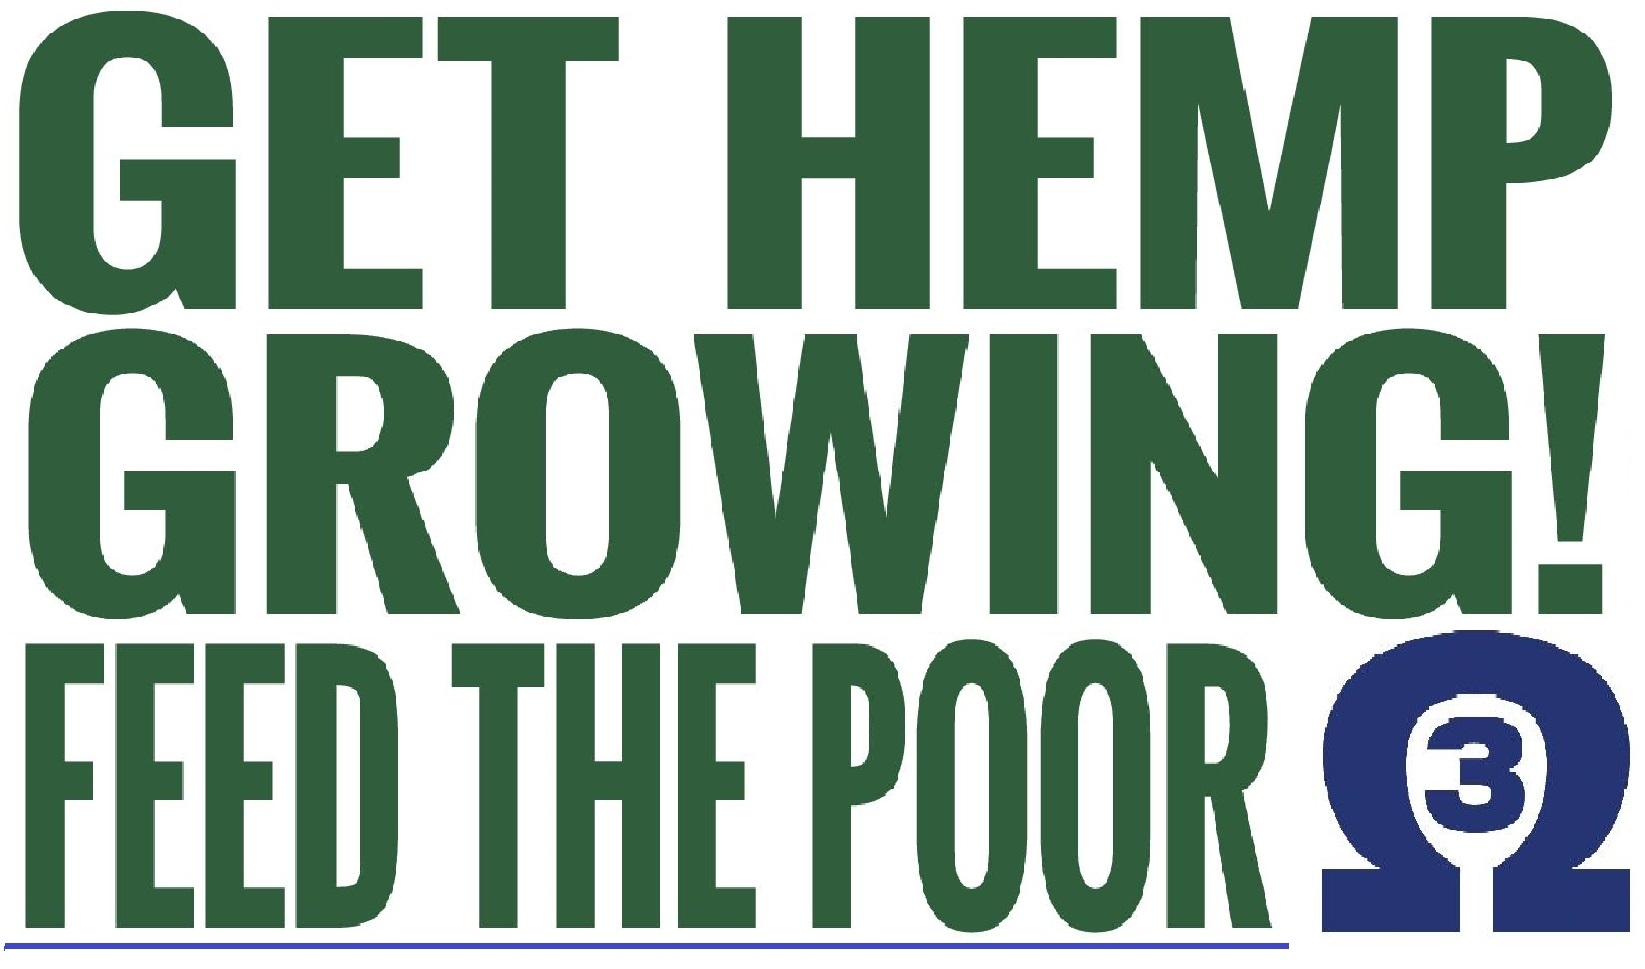 Grow Hemp Feed the poor